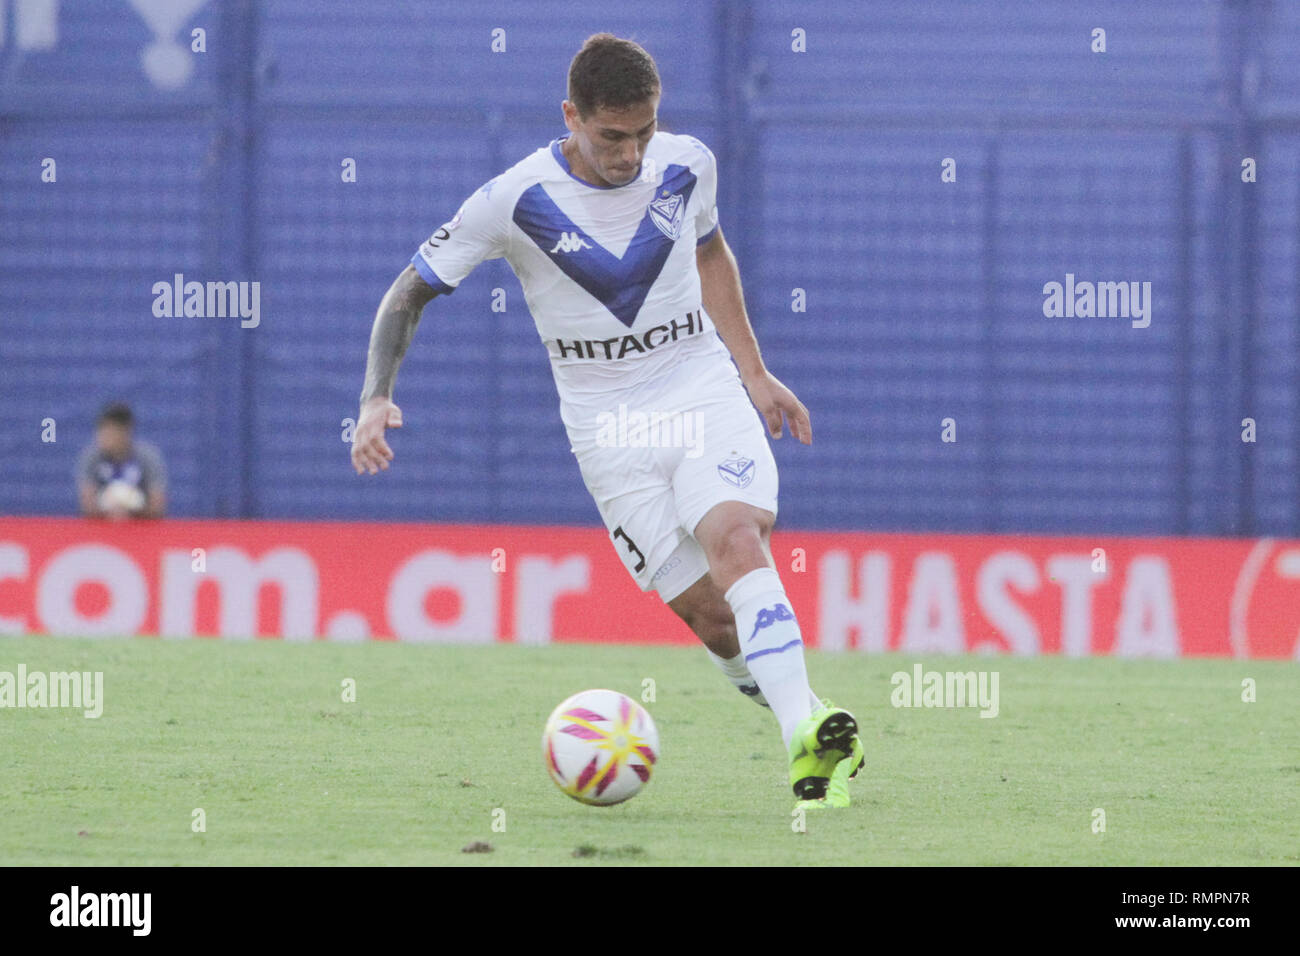 Buenos Aires, Argentina. 15th Feb, 2019. Braian Cufre during the match between Vélez Sarsfield e Colon for Superliga Argentina, this friday on José Amalfitani Stadium on Buenos Aires, Argentina. ( Credit: Néstor J. Beremblum/Alamy Live News - Stock Image